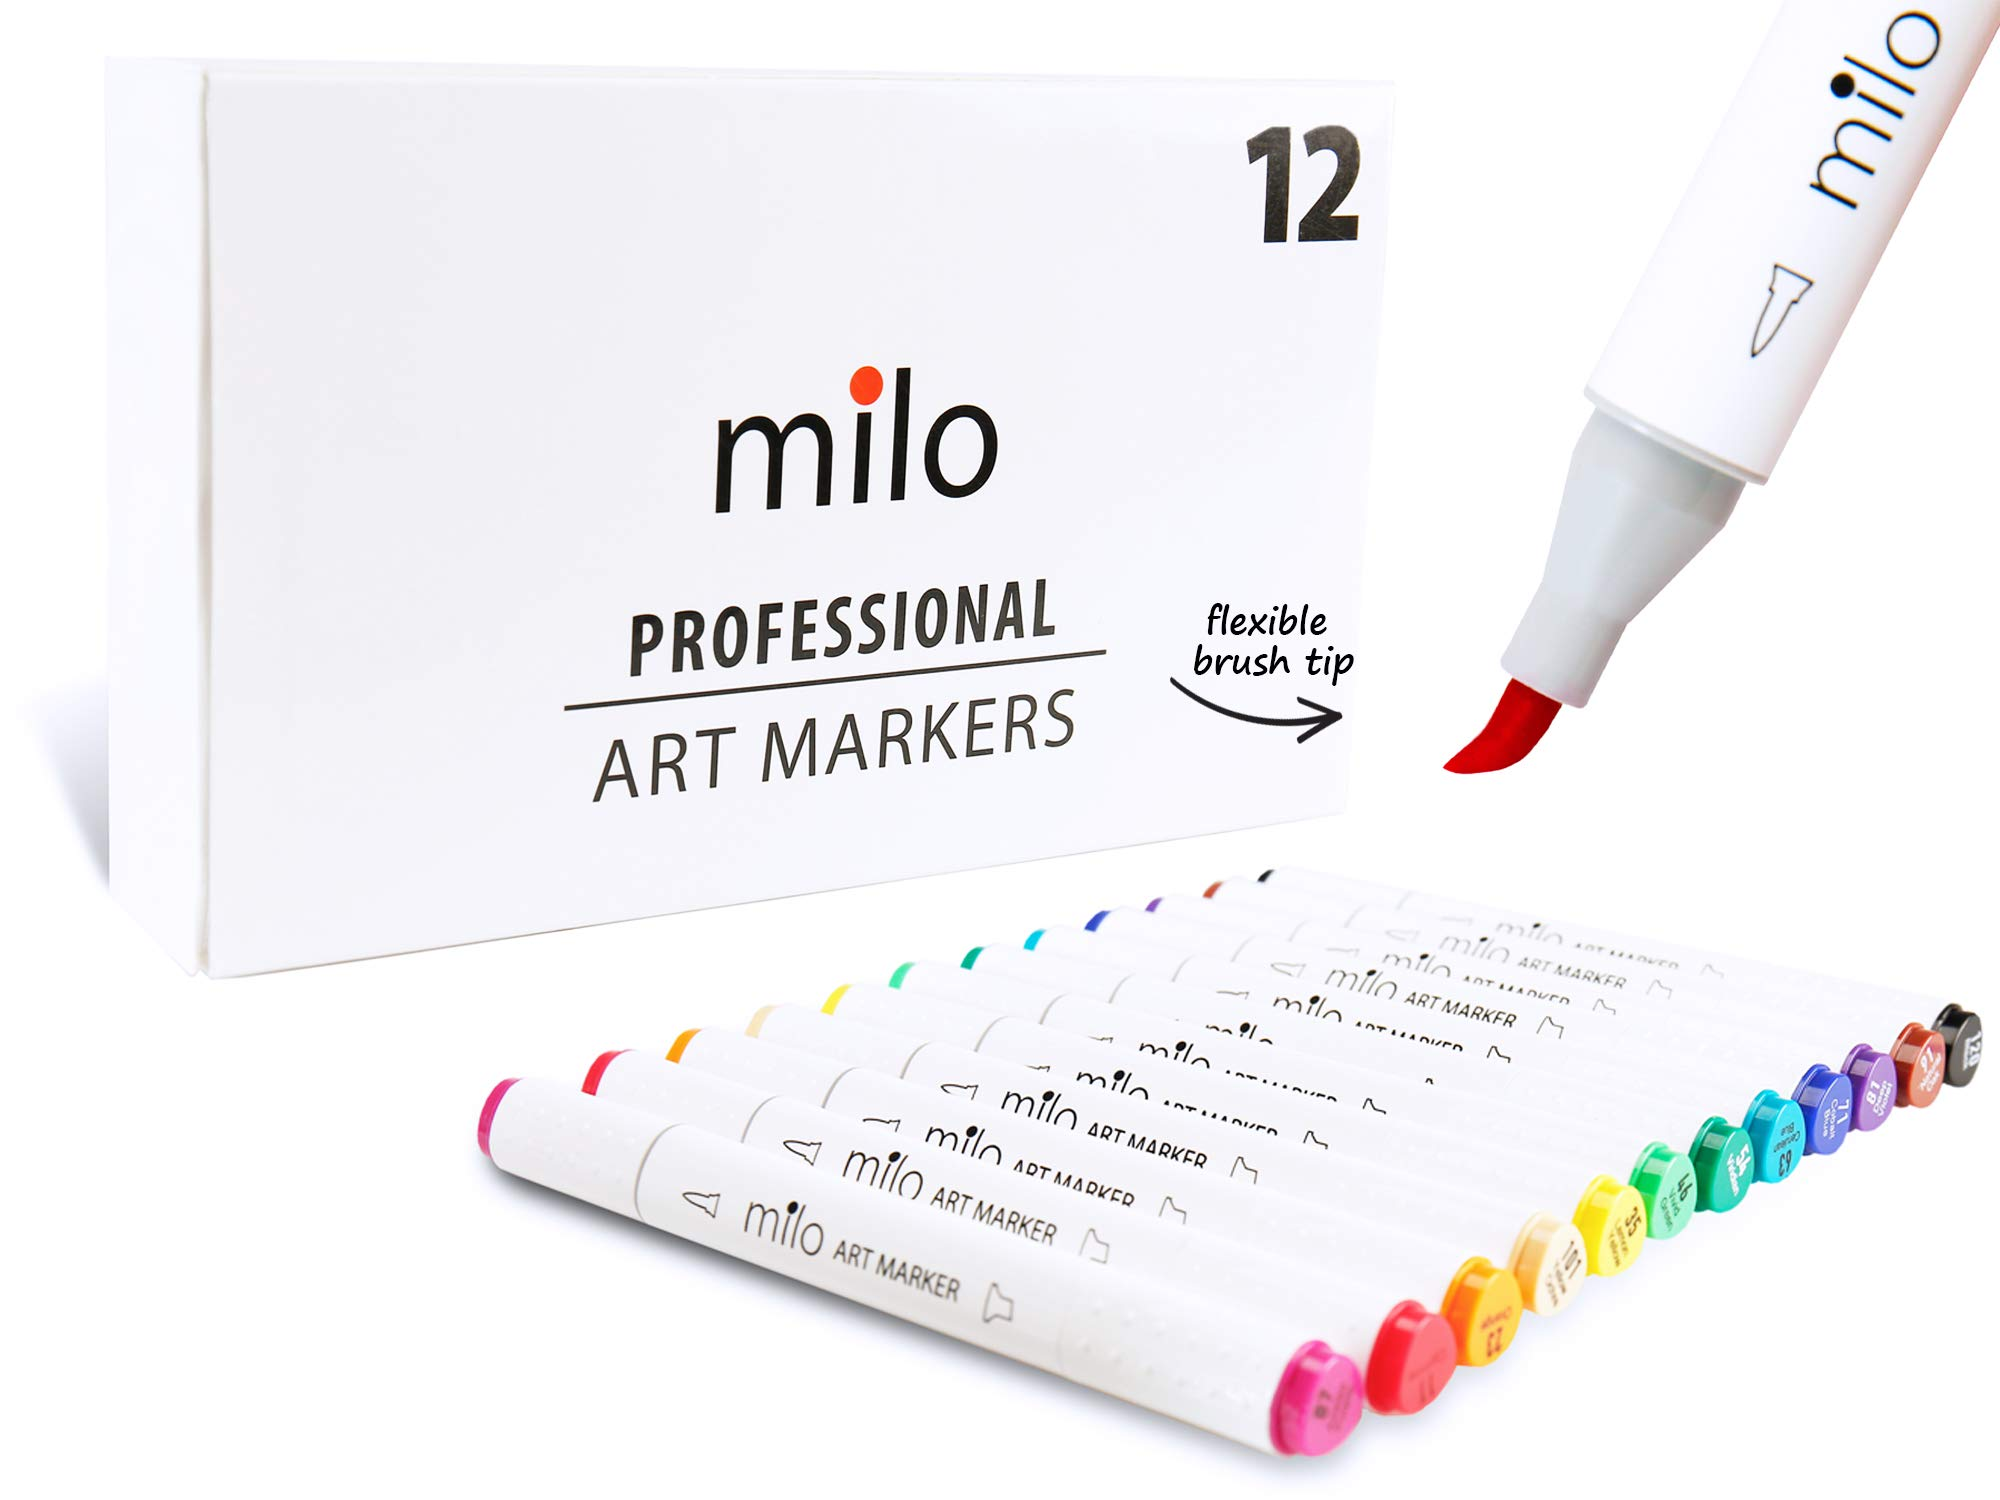 Milo PRO | Art Markers with Brush Tip and Chisel Set of 12 | Alcohol-Based Dual Tip with Soft Flexible Brush Nib